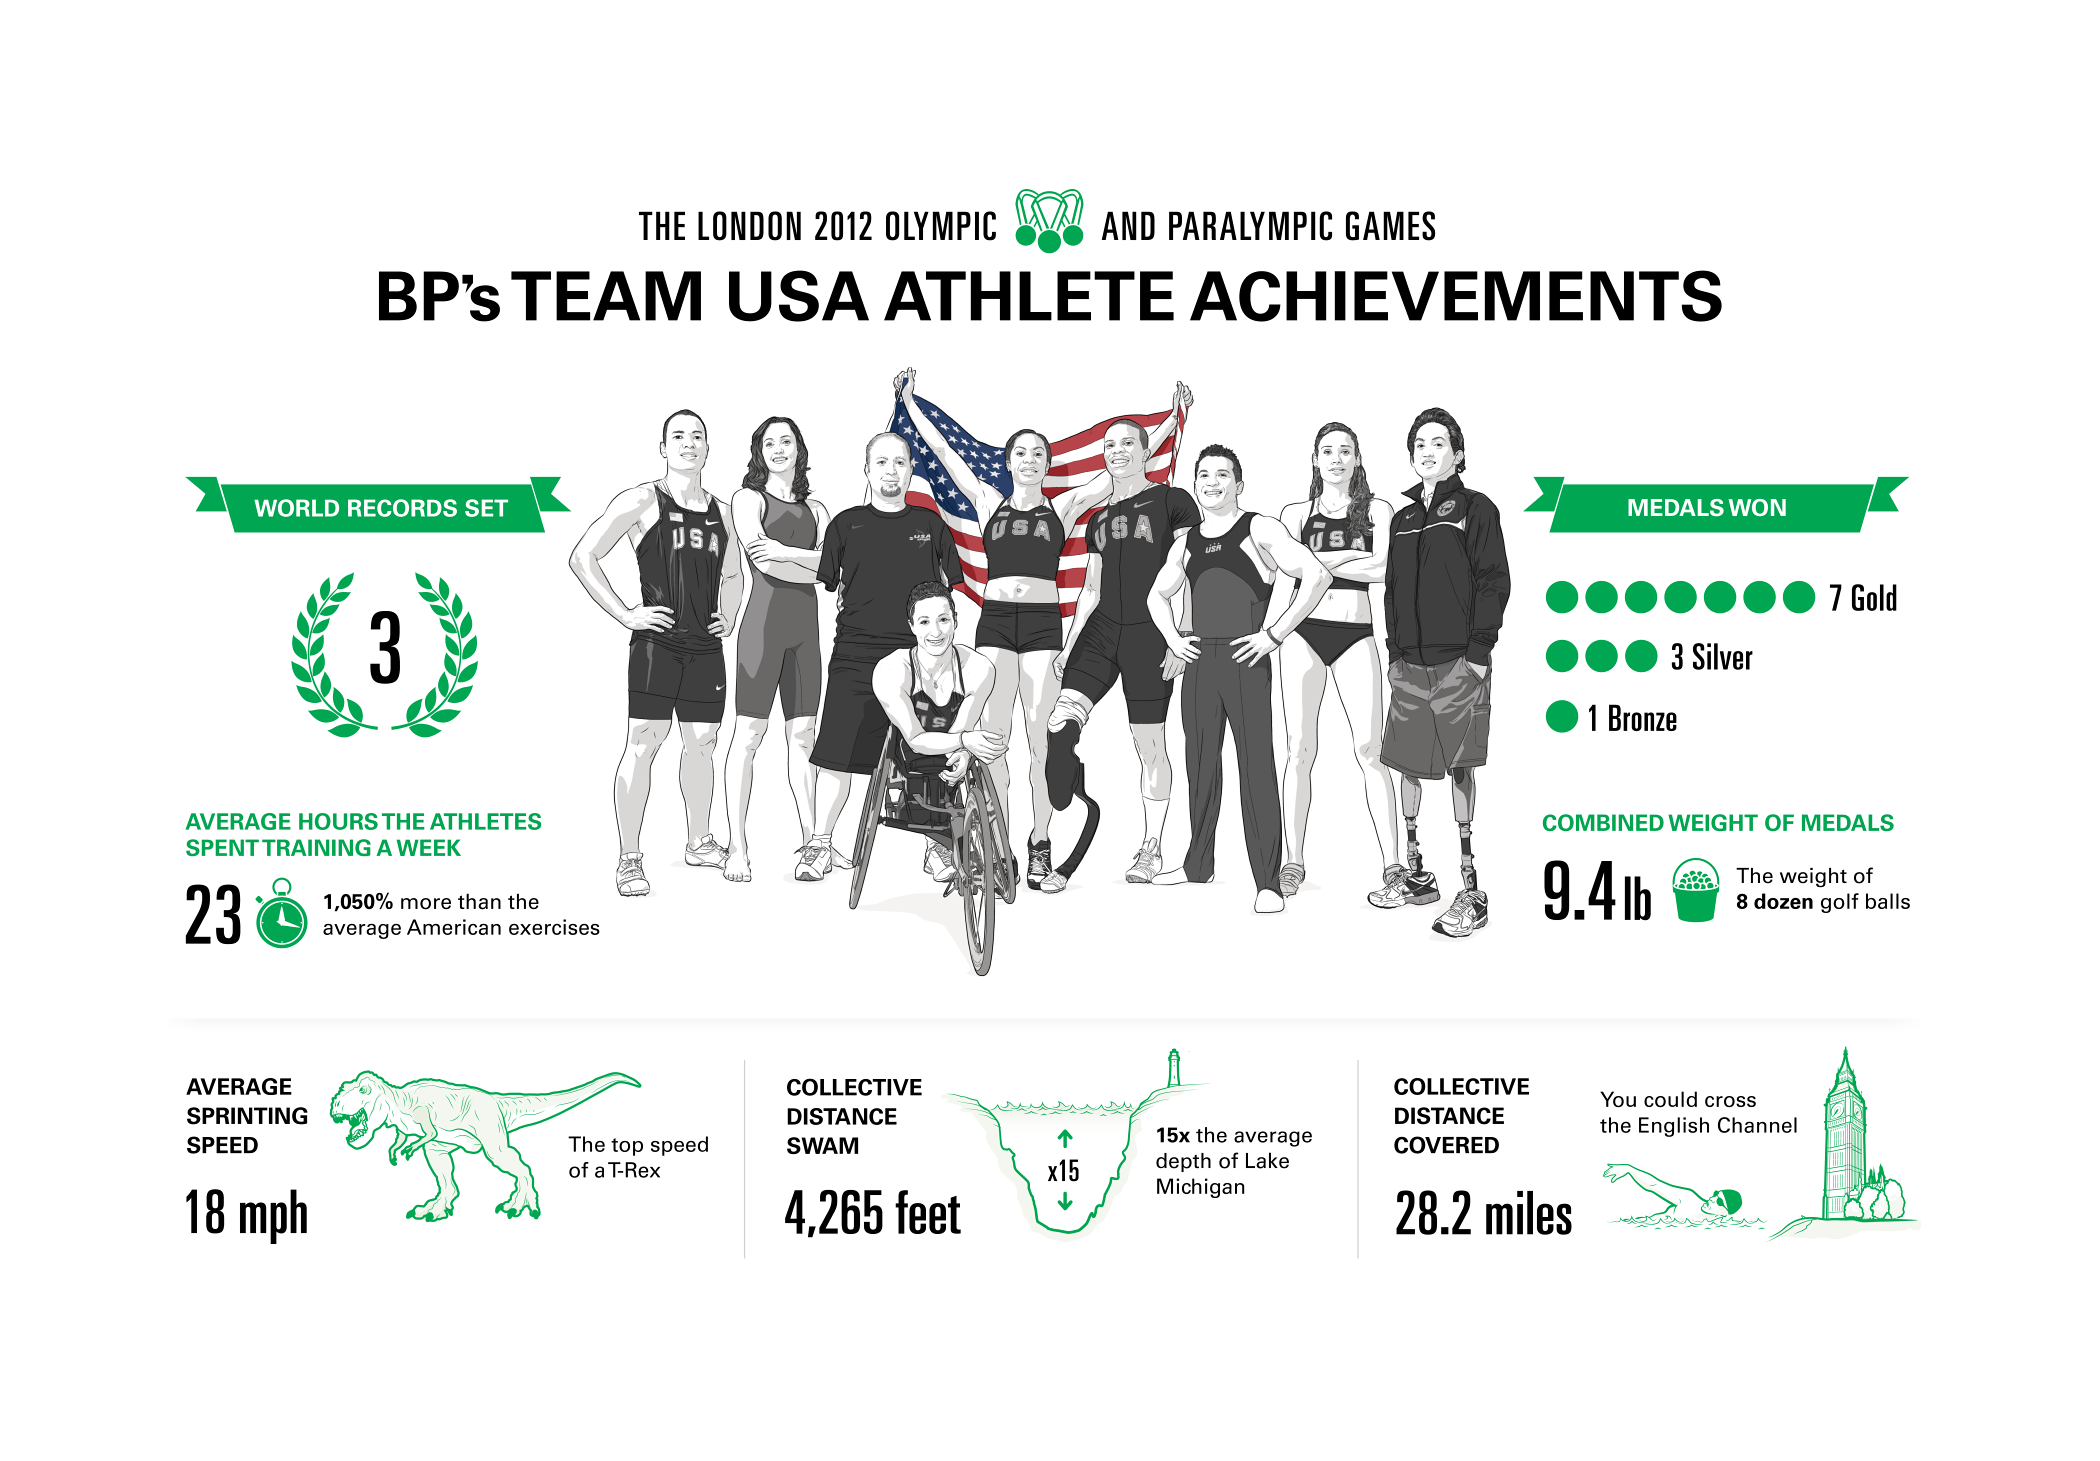 BP's Team USA Athlete Achievements Infographic by Max Hancock